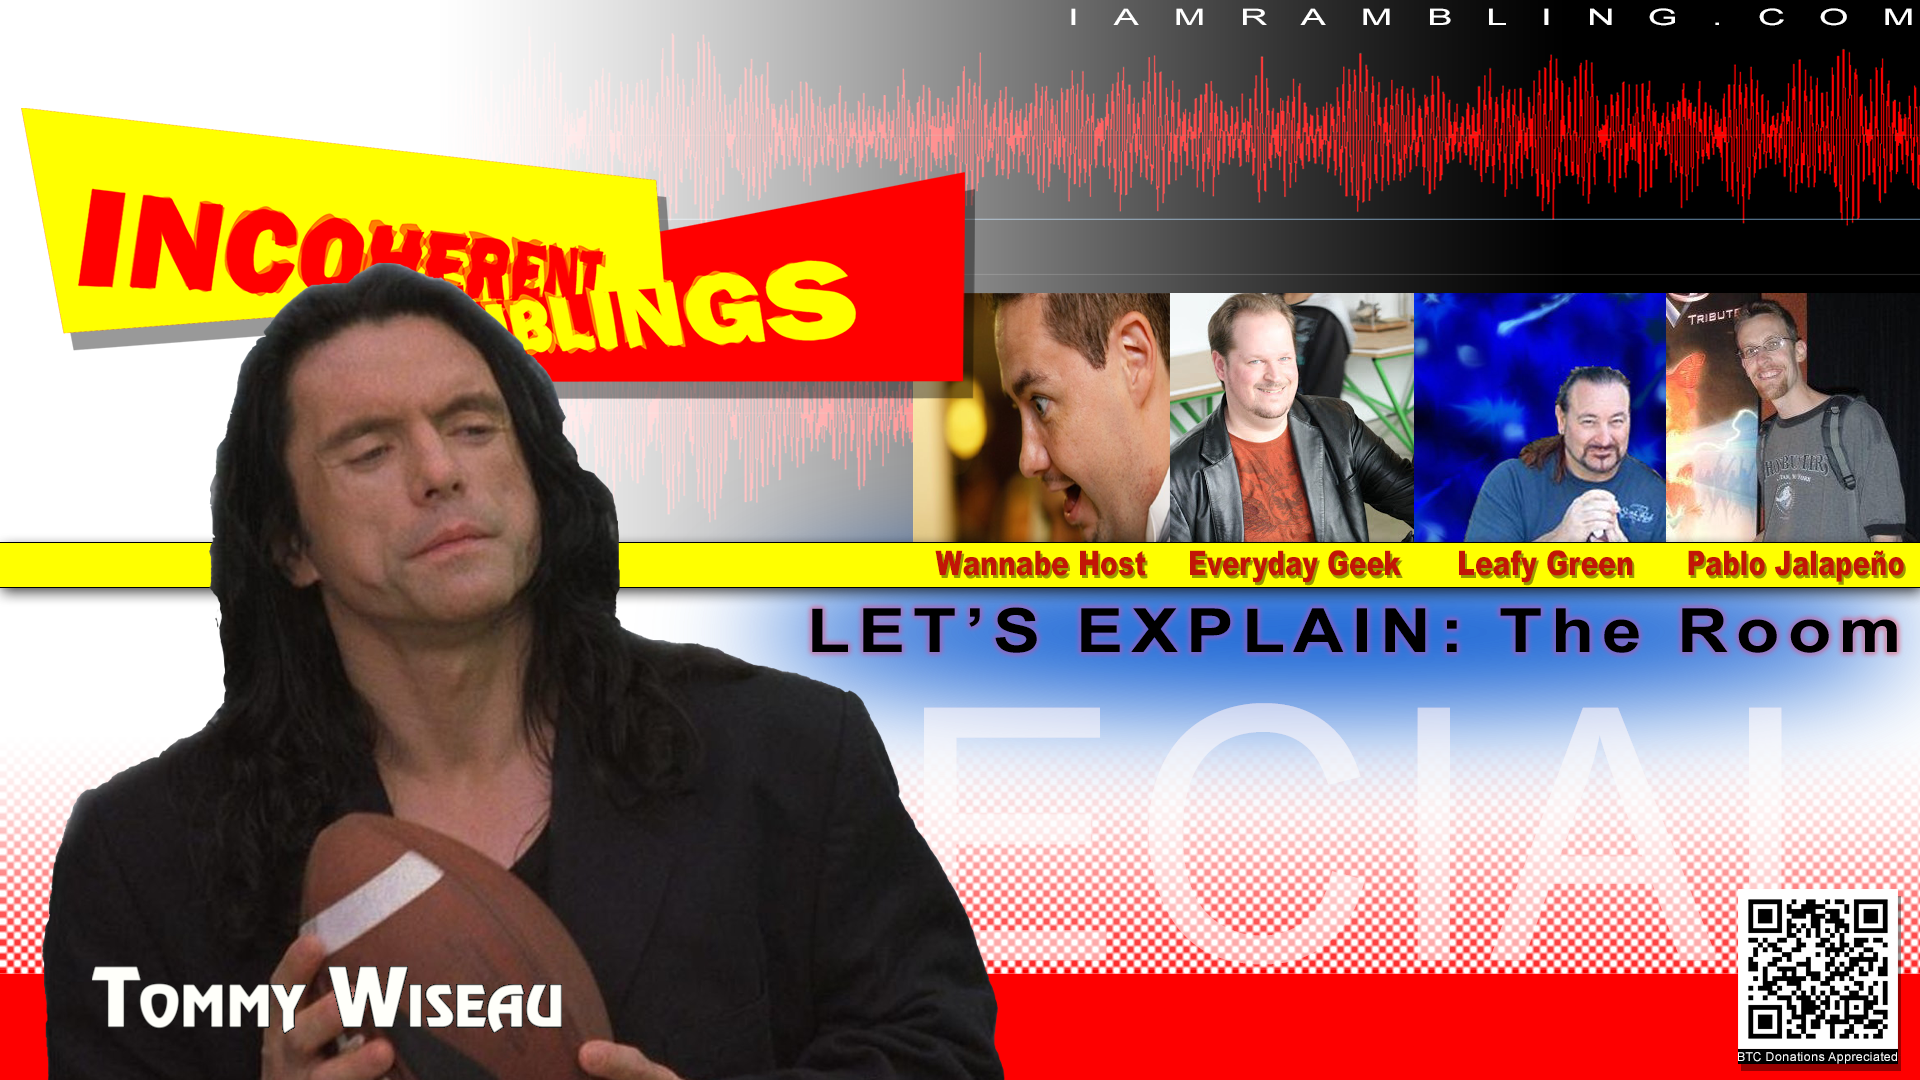 Let's Explain: The Room and Tommy Wiseau